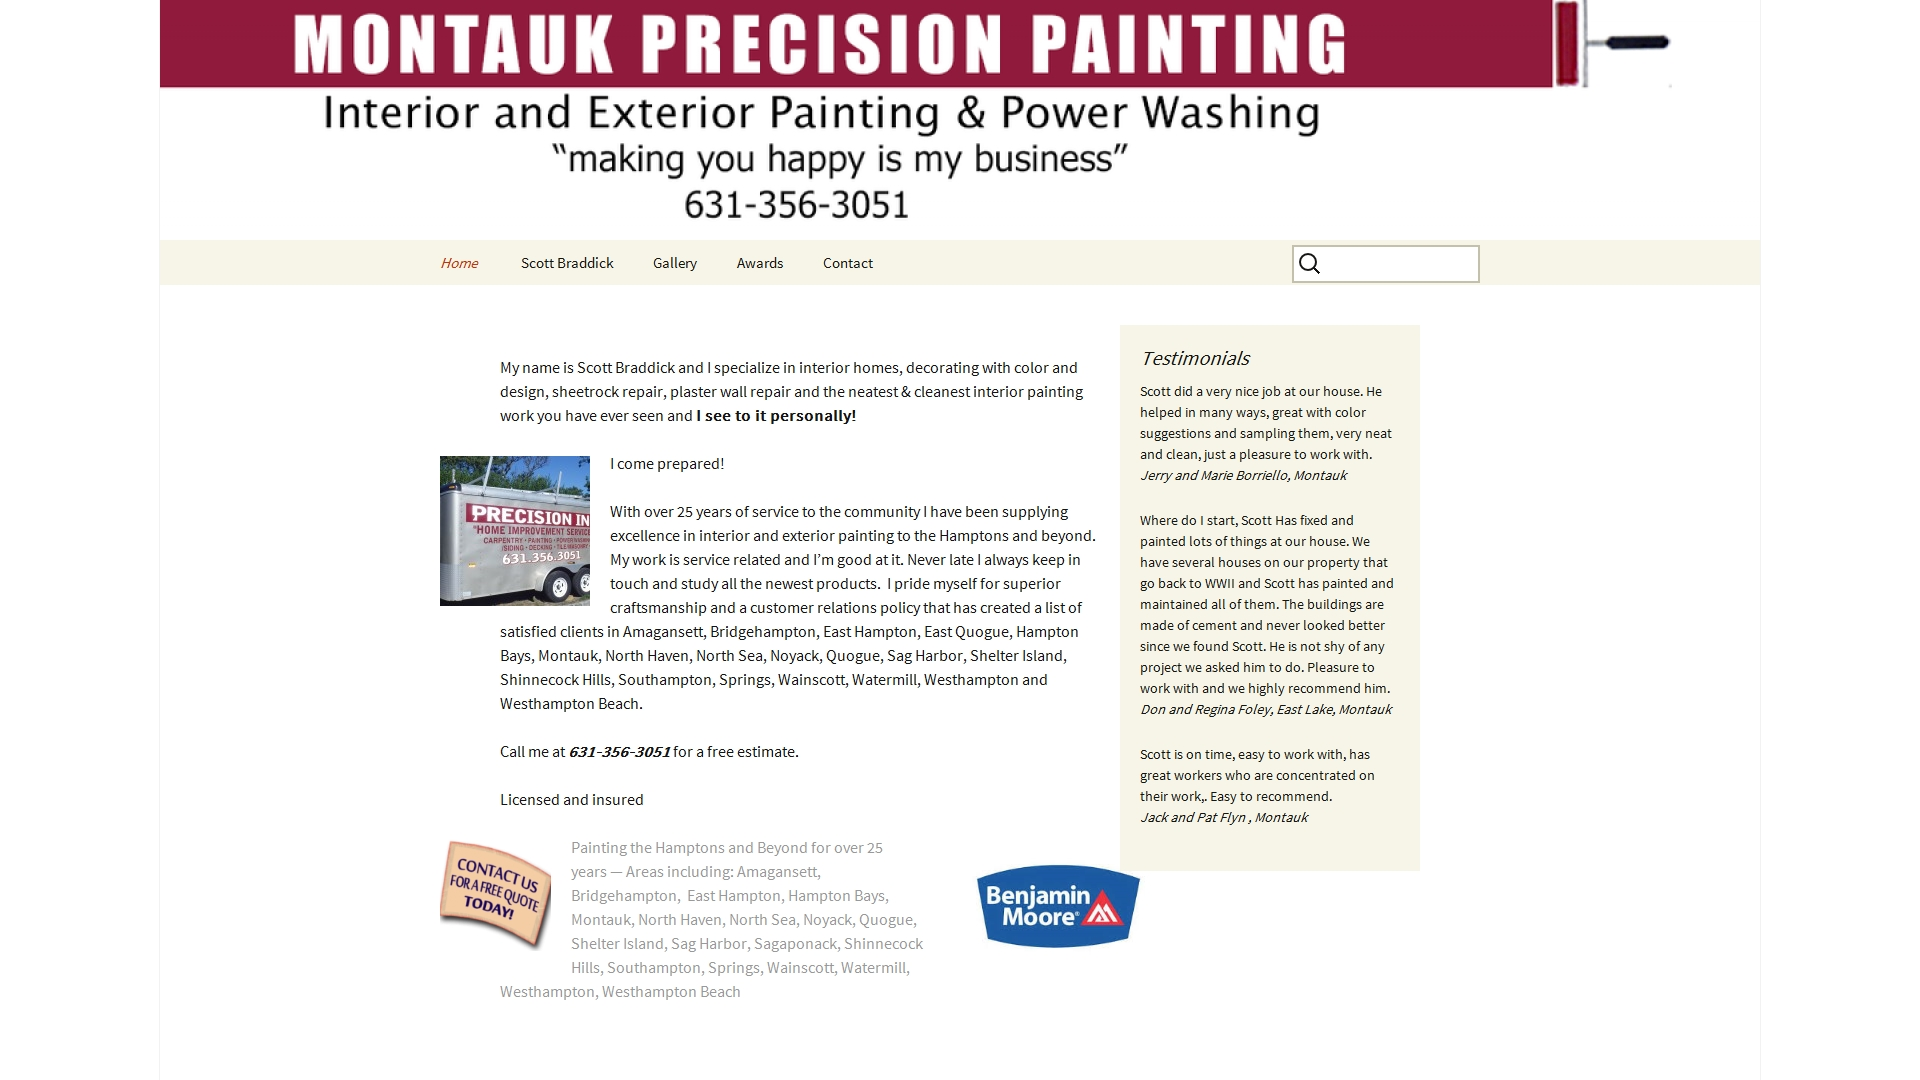 montaukprecisionpainting.com